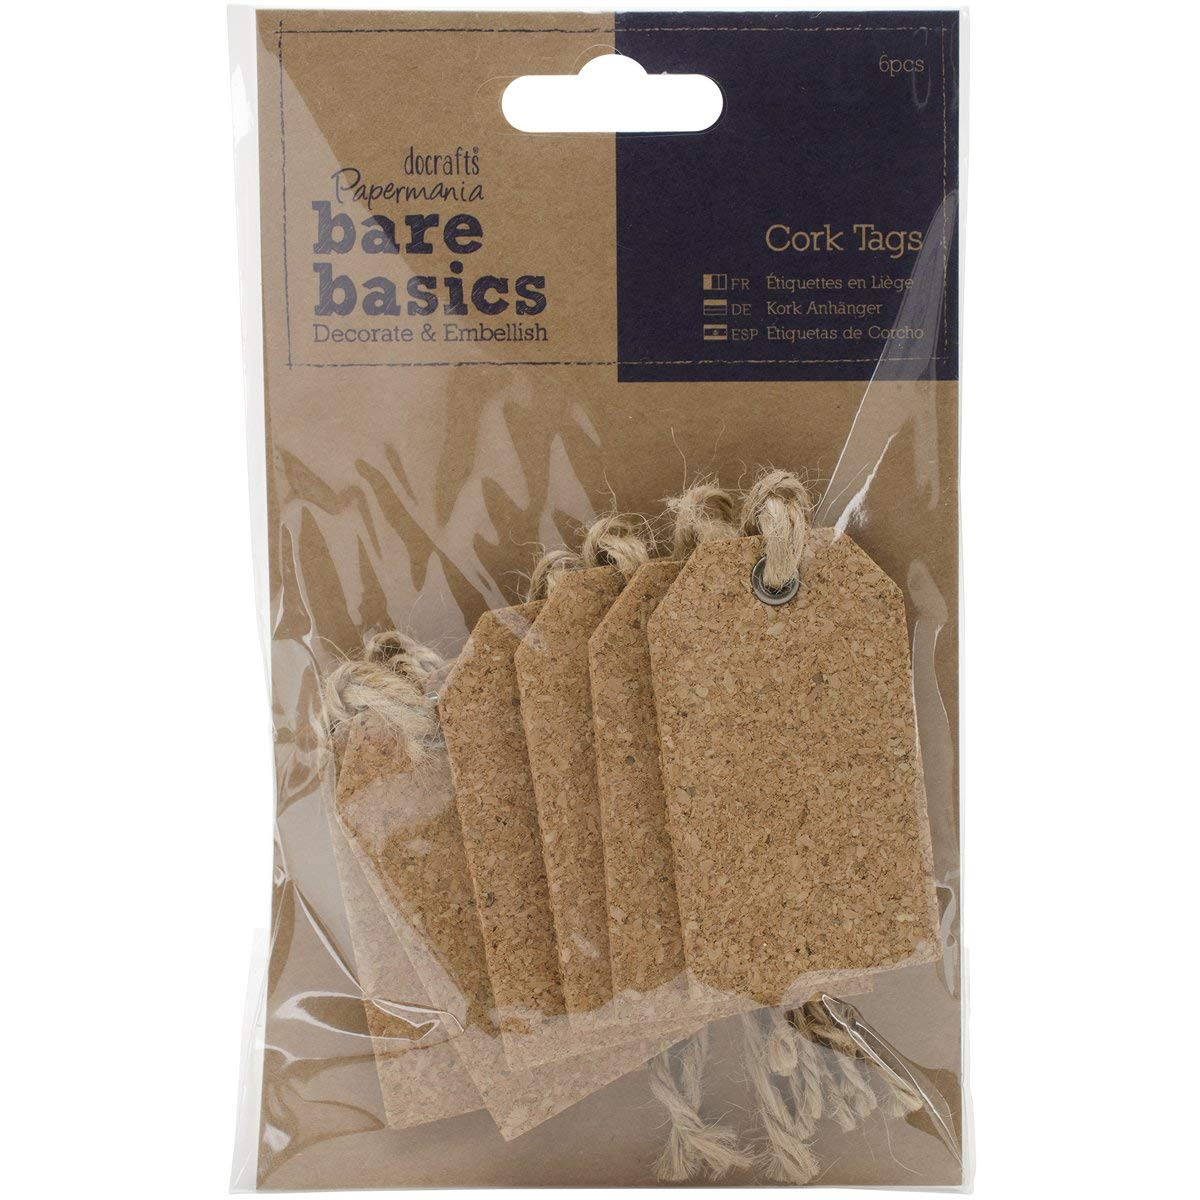 DOCrafts PM174804 Papermania Bare Basics Cork Tags Gift